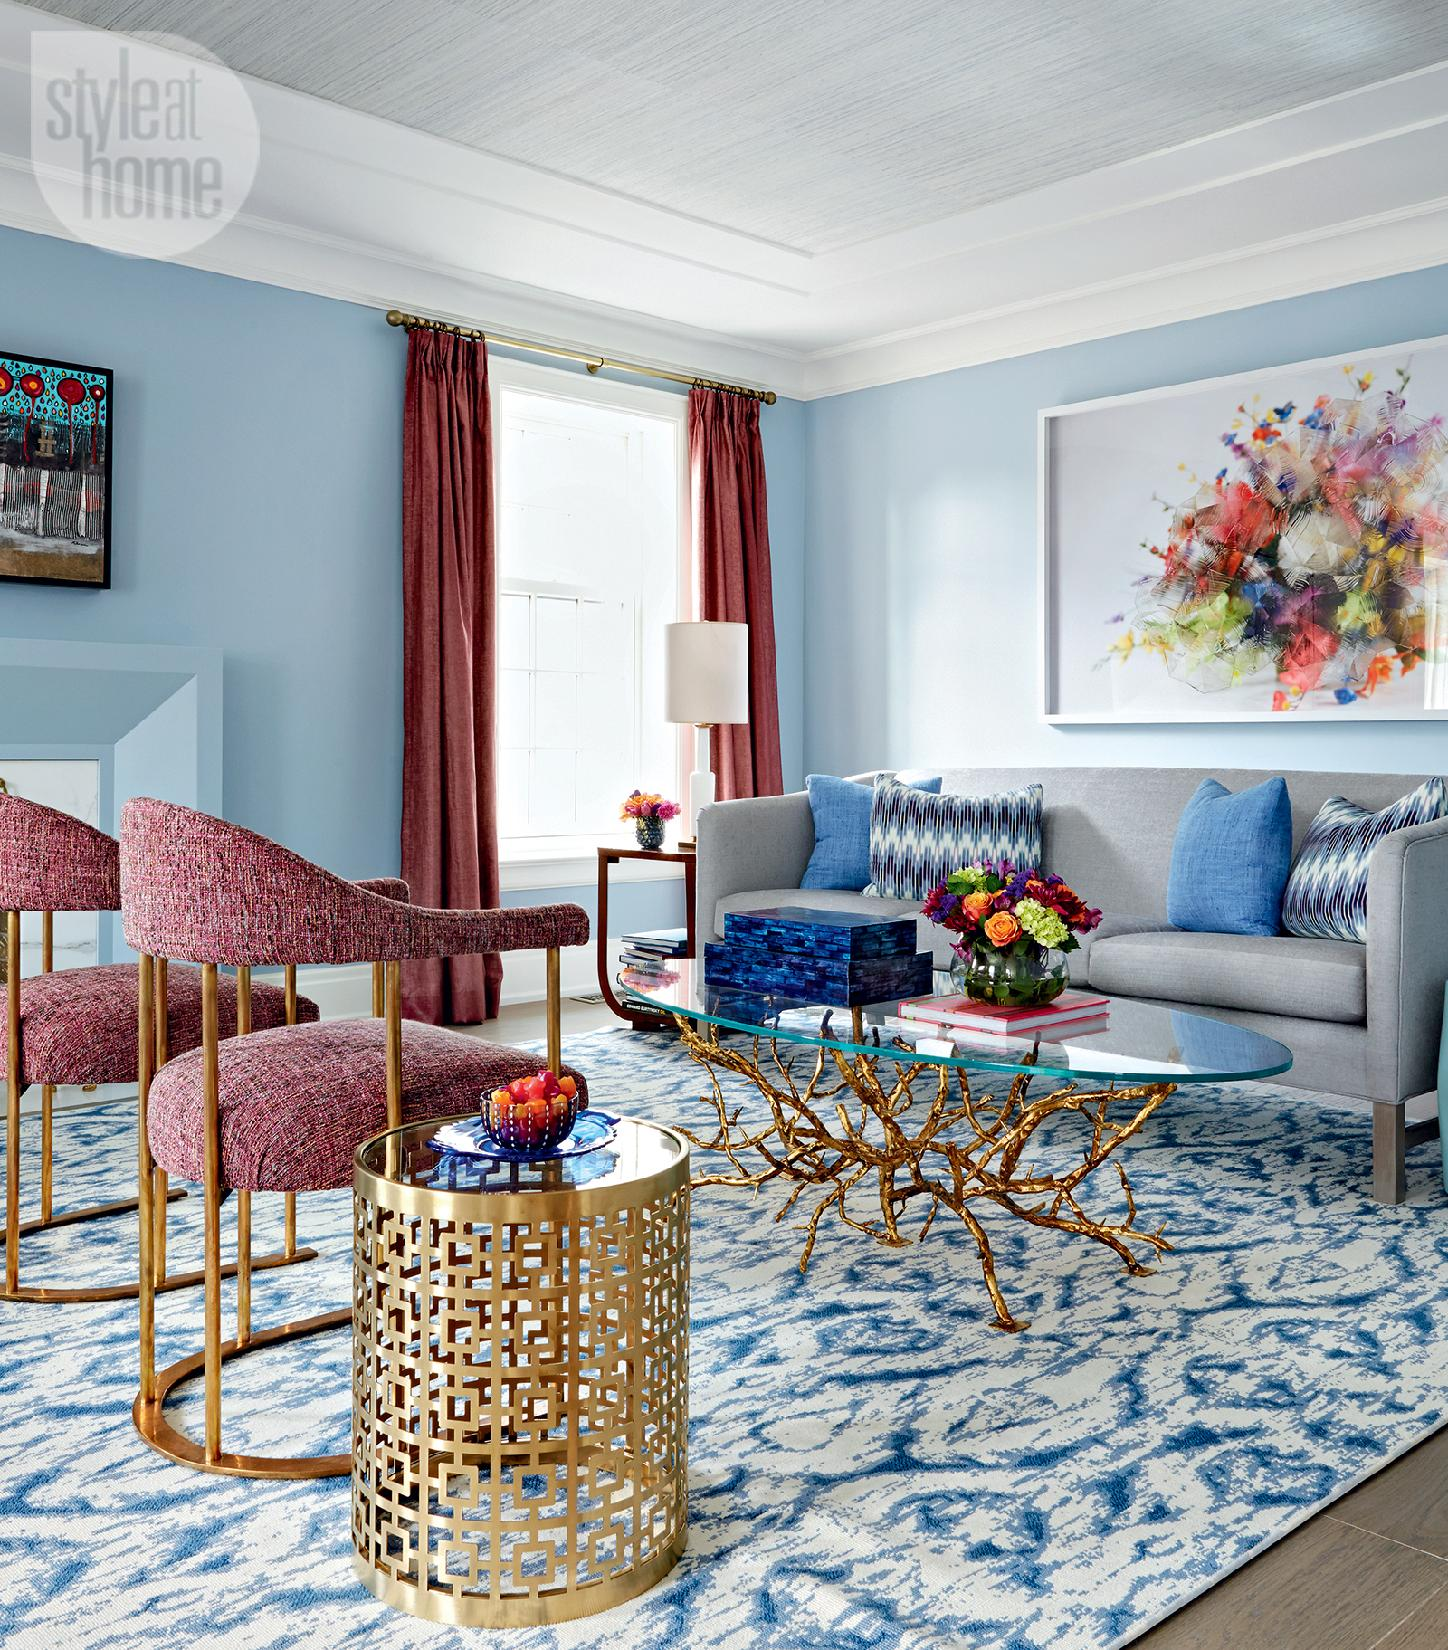 How To Decorate With Patterns: 3 Major Secrets